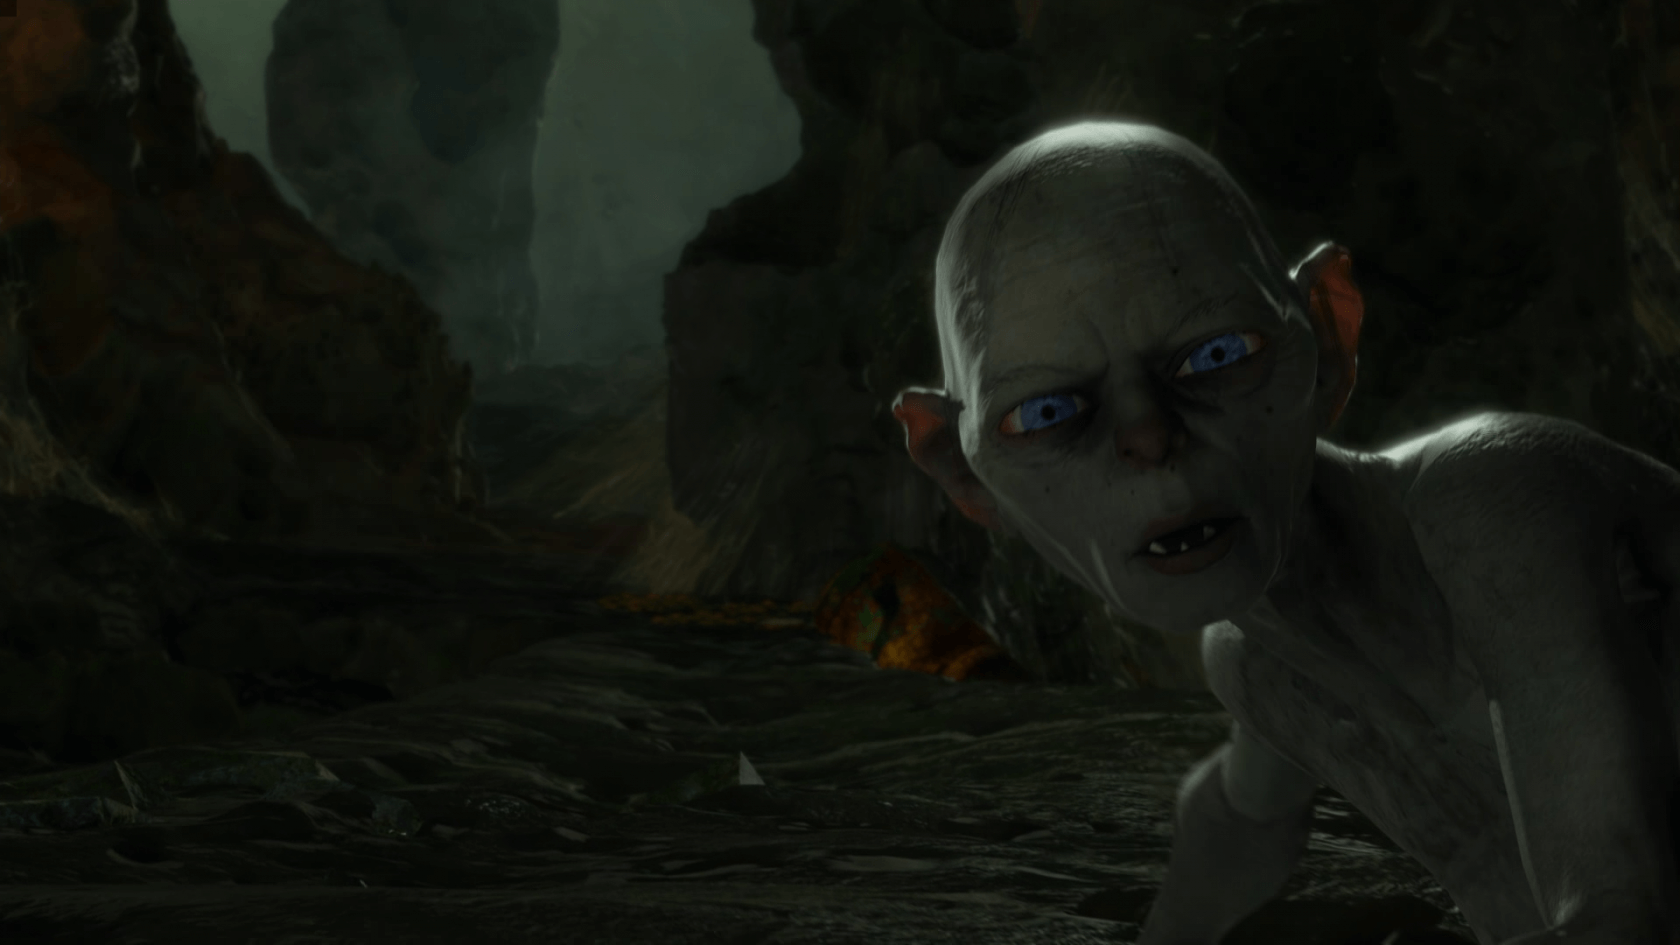 Daedalic Entertainment announces action-adventure title 'The Lord of the Rings: Gollum'